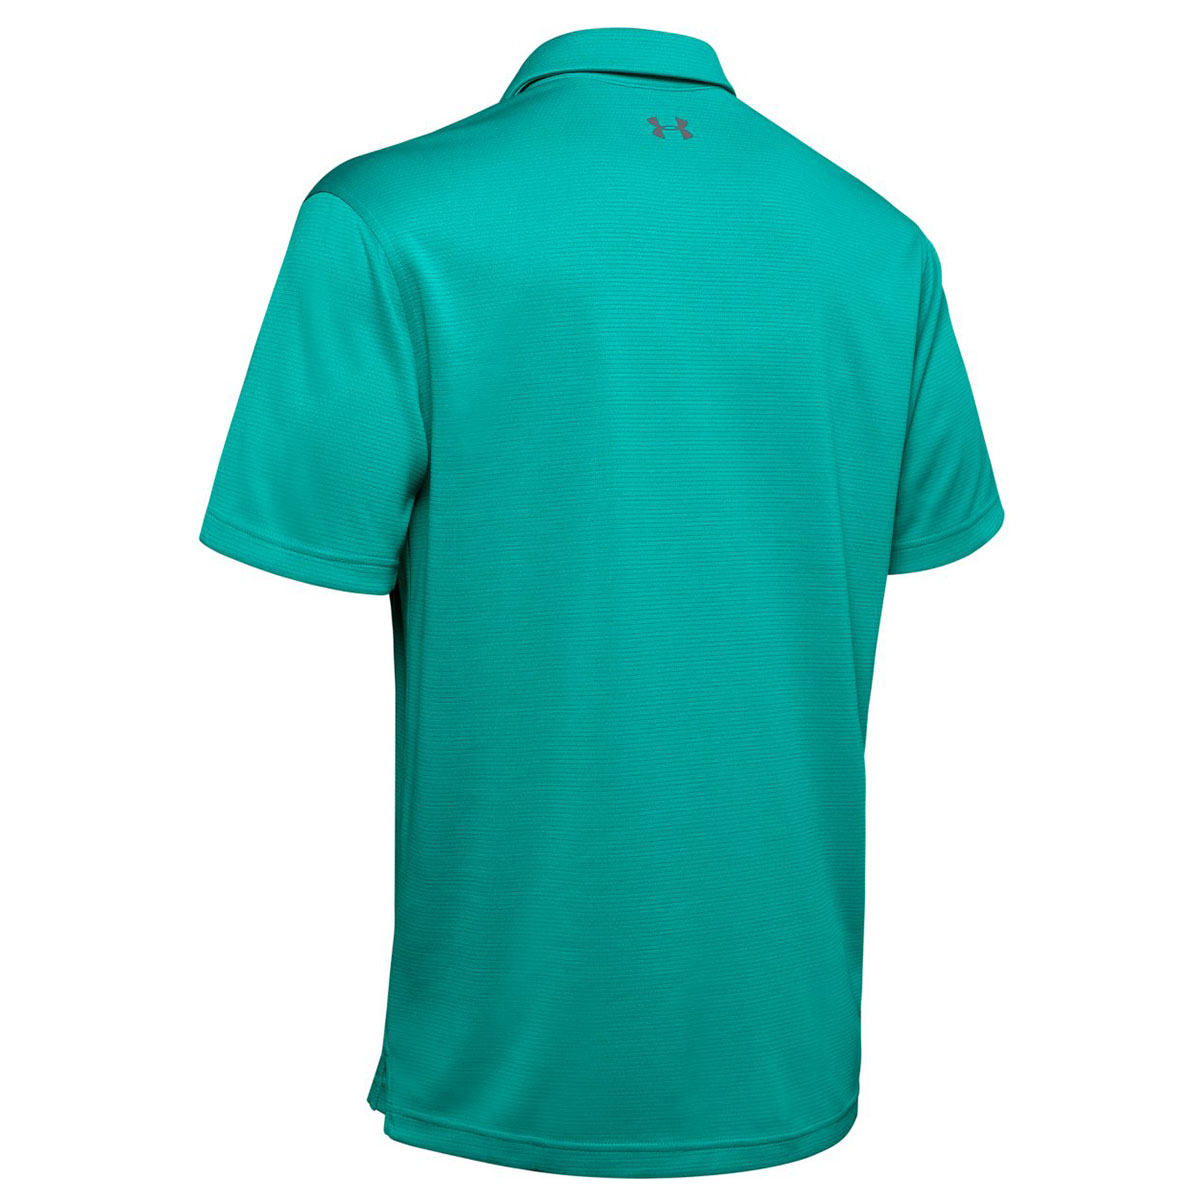 Under-Armour-Mens-2019-Golf-Tech-Wicking-Textured-Soft-Light-Polo-Shirt thumbnail 73